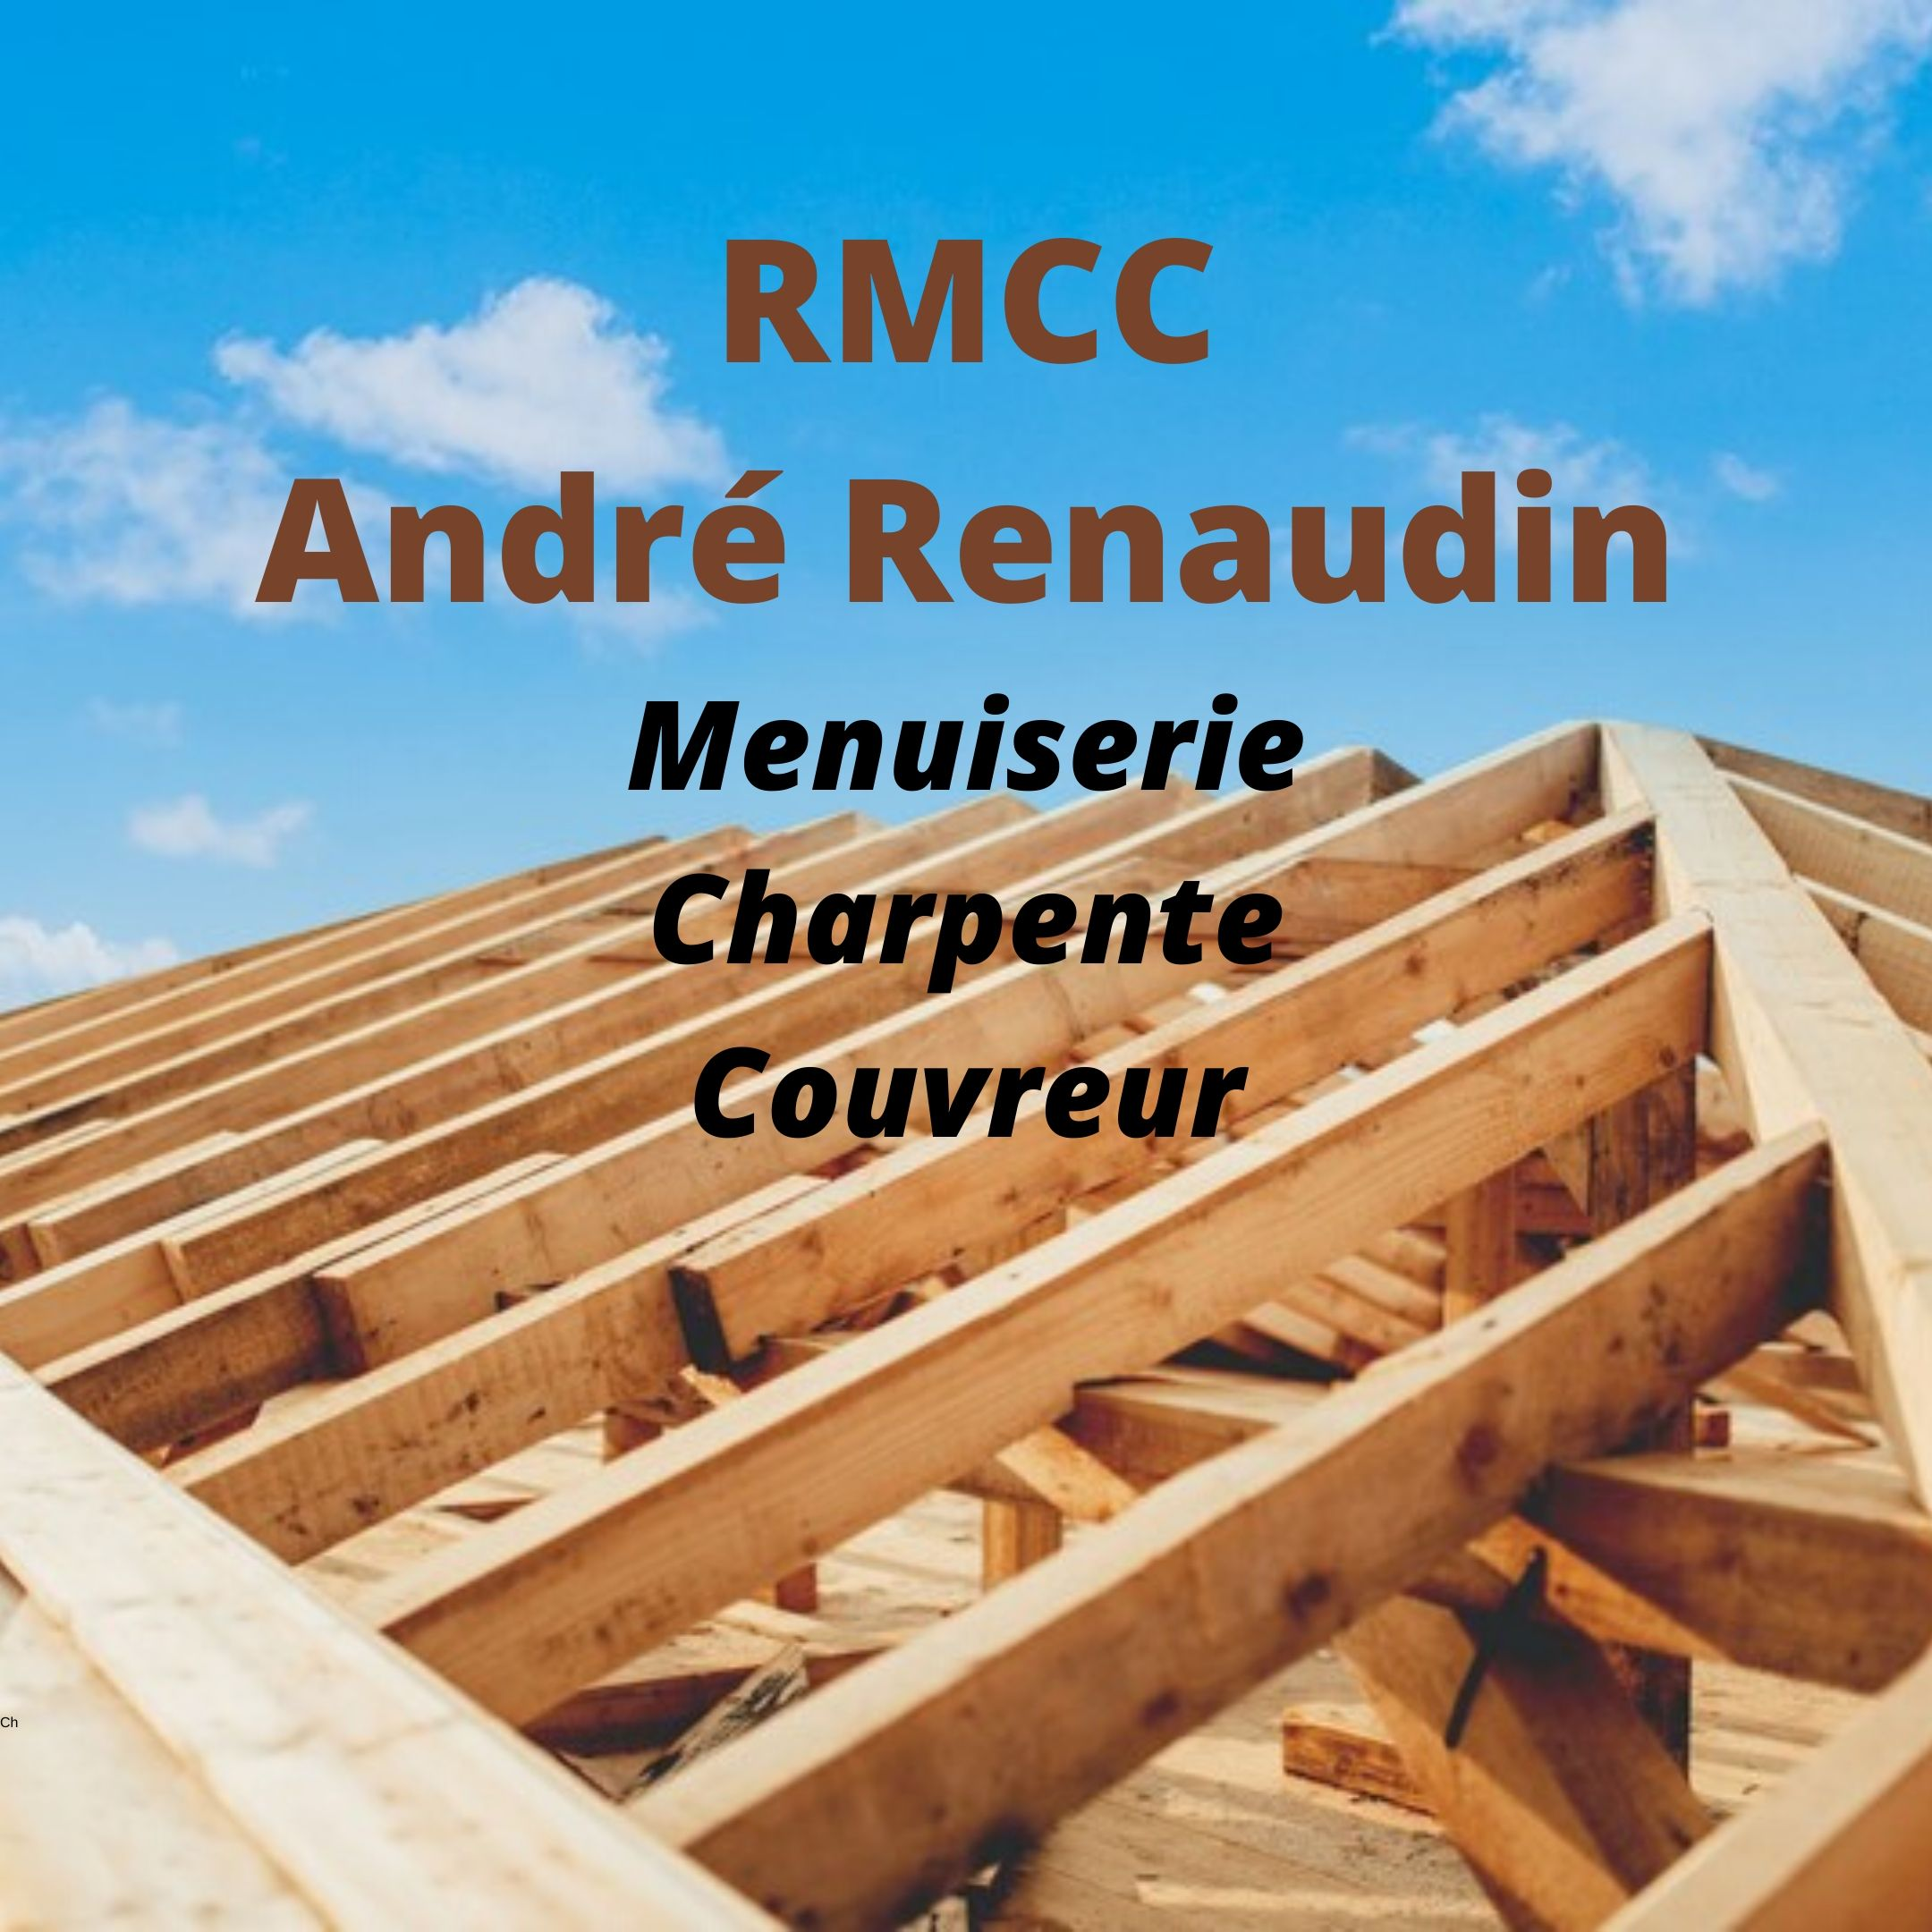 RMCC Andr Renaudin Menuiserie Charpente Couvreur 09 52 18 80 11 Ch1